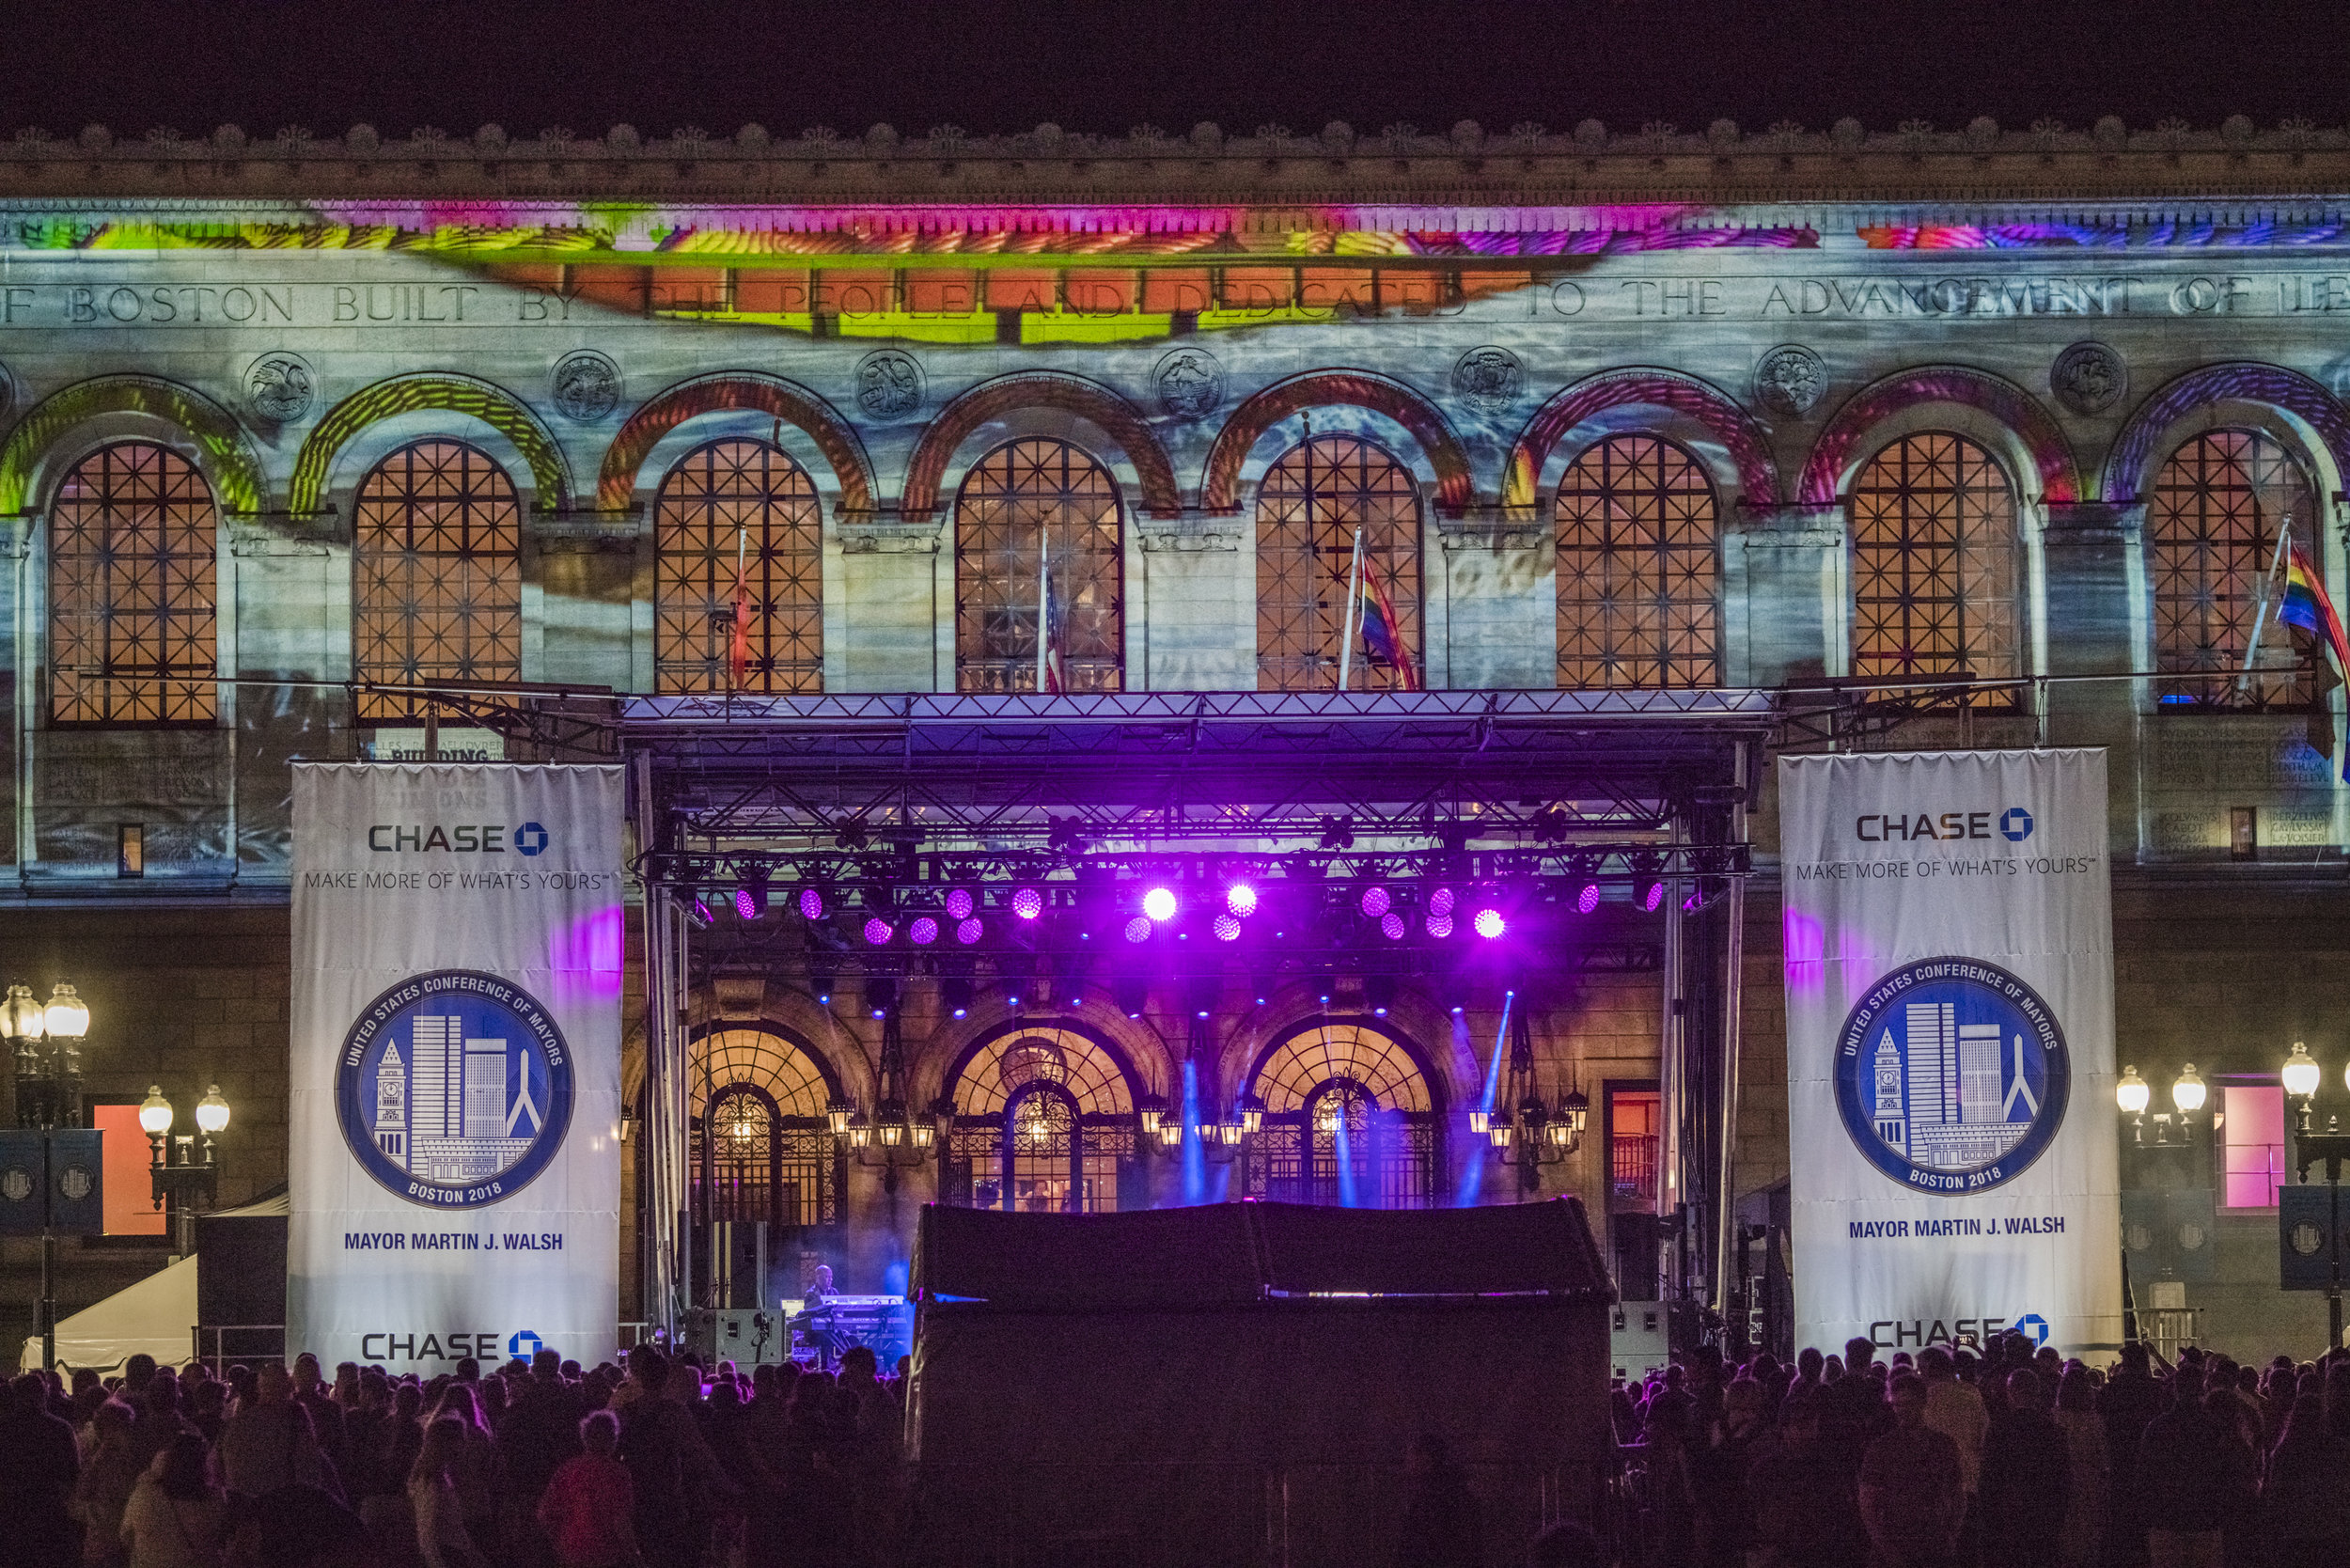 Boston Public Library US Conference of Mayors Port Lighting Video Mapped Facade Copley Plaza Pointer Sisters Concert.jpg